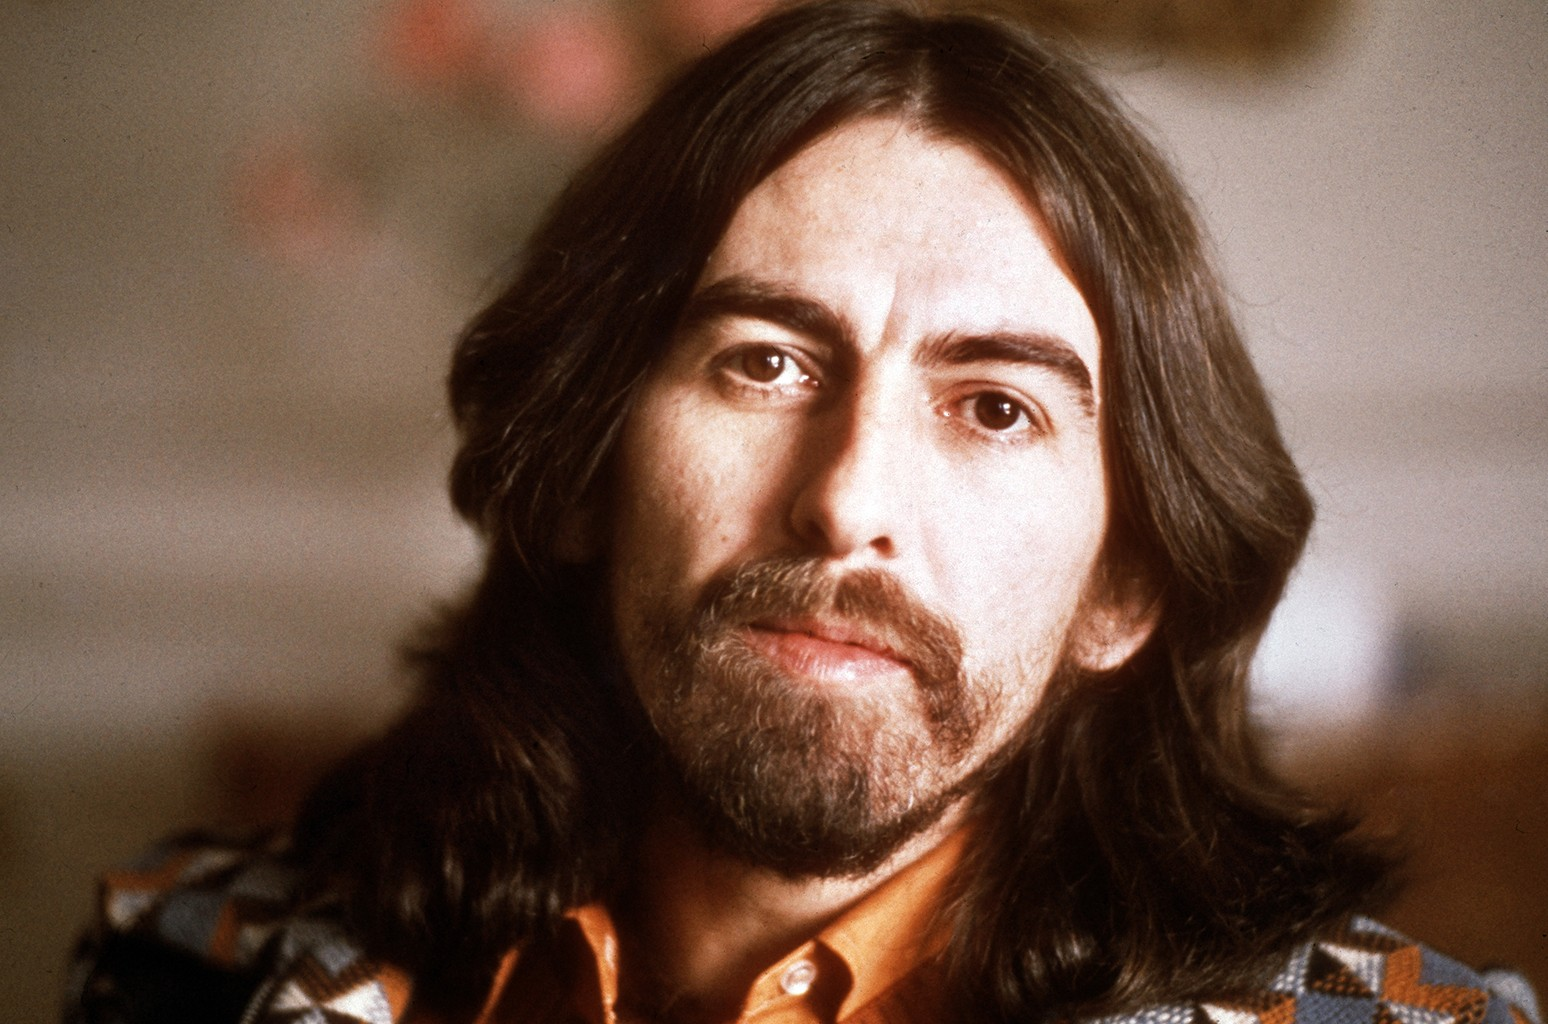 George Harrison photographed on Jan. 30, 1976.